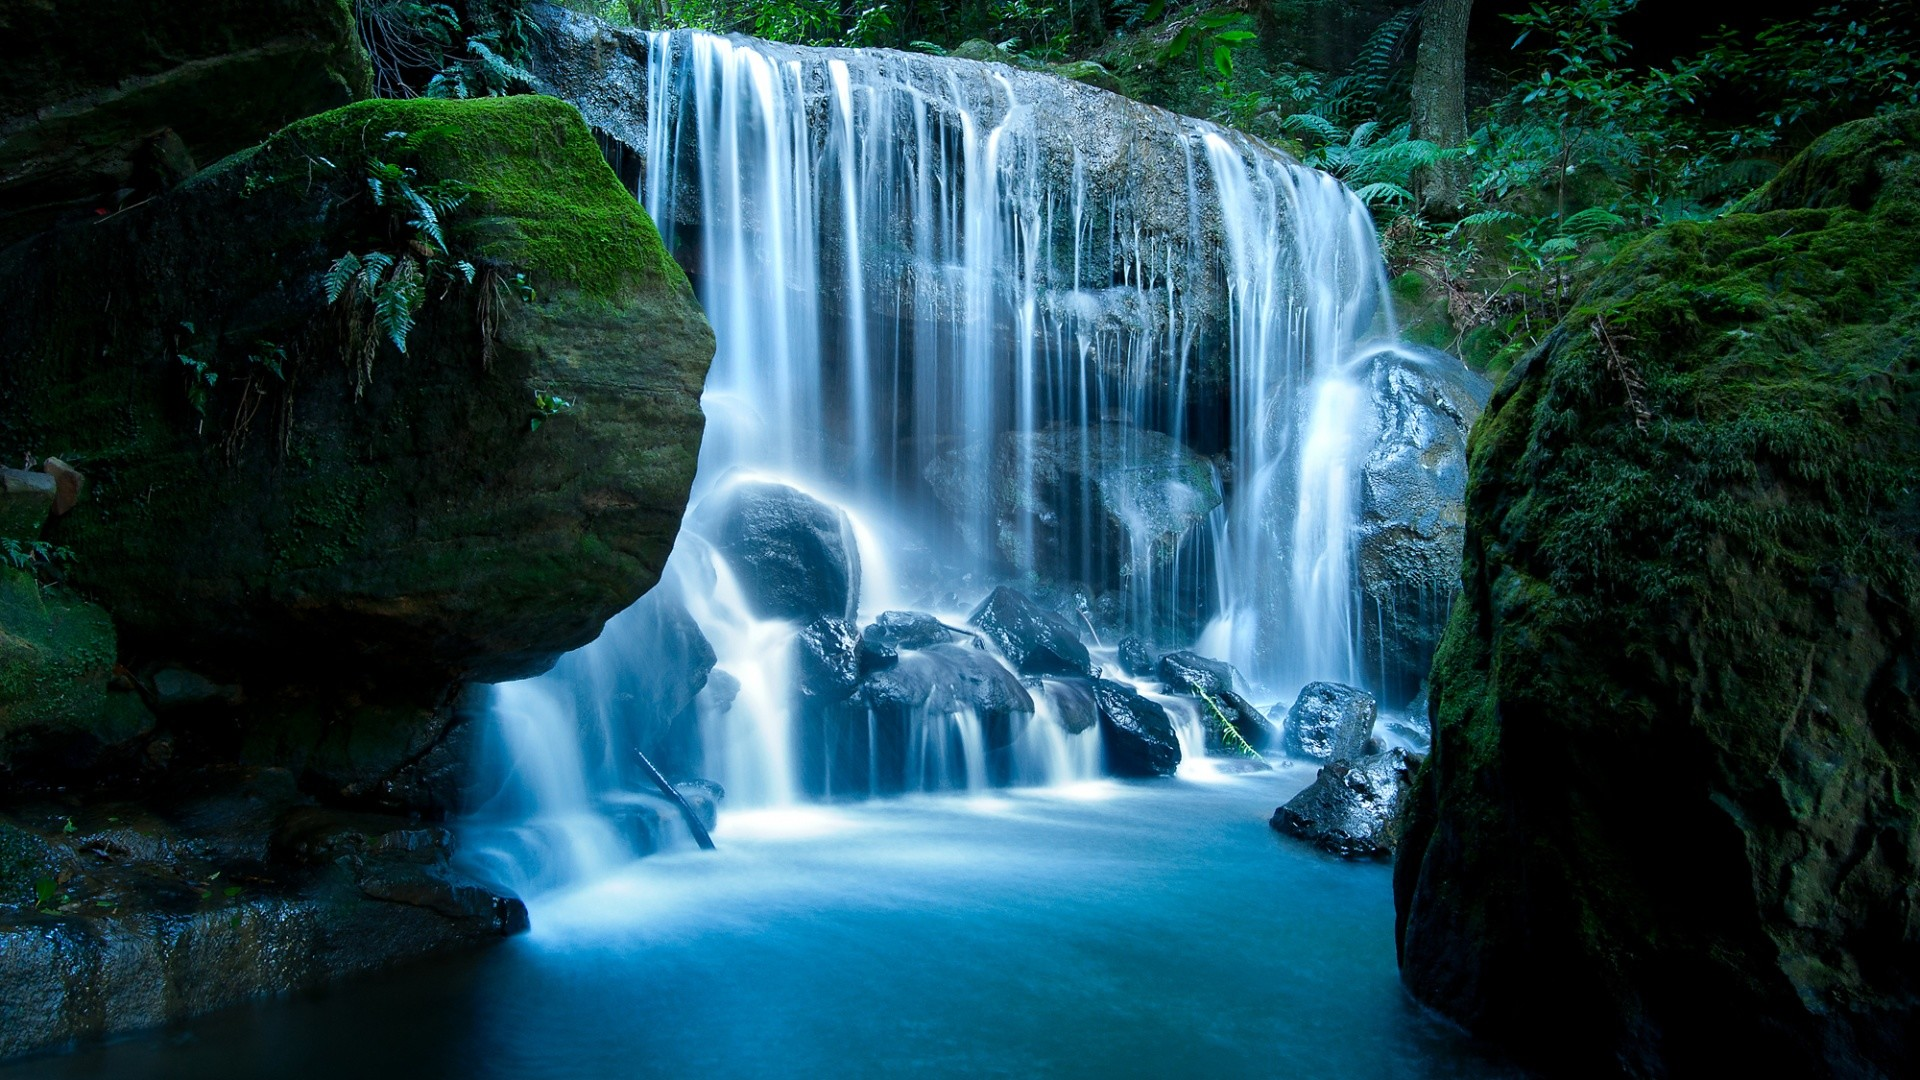 Find out: NSW Australia Waterfall wallpaper on https://hdpicorner.com/